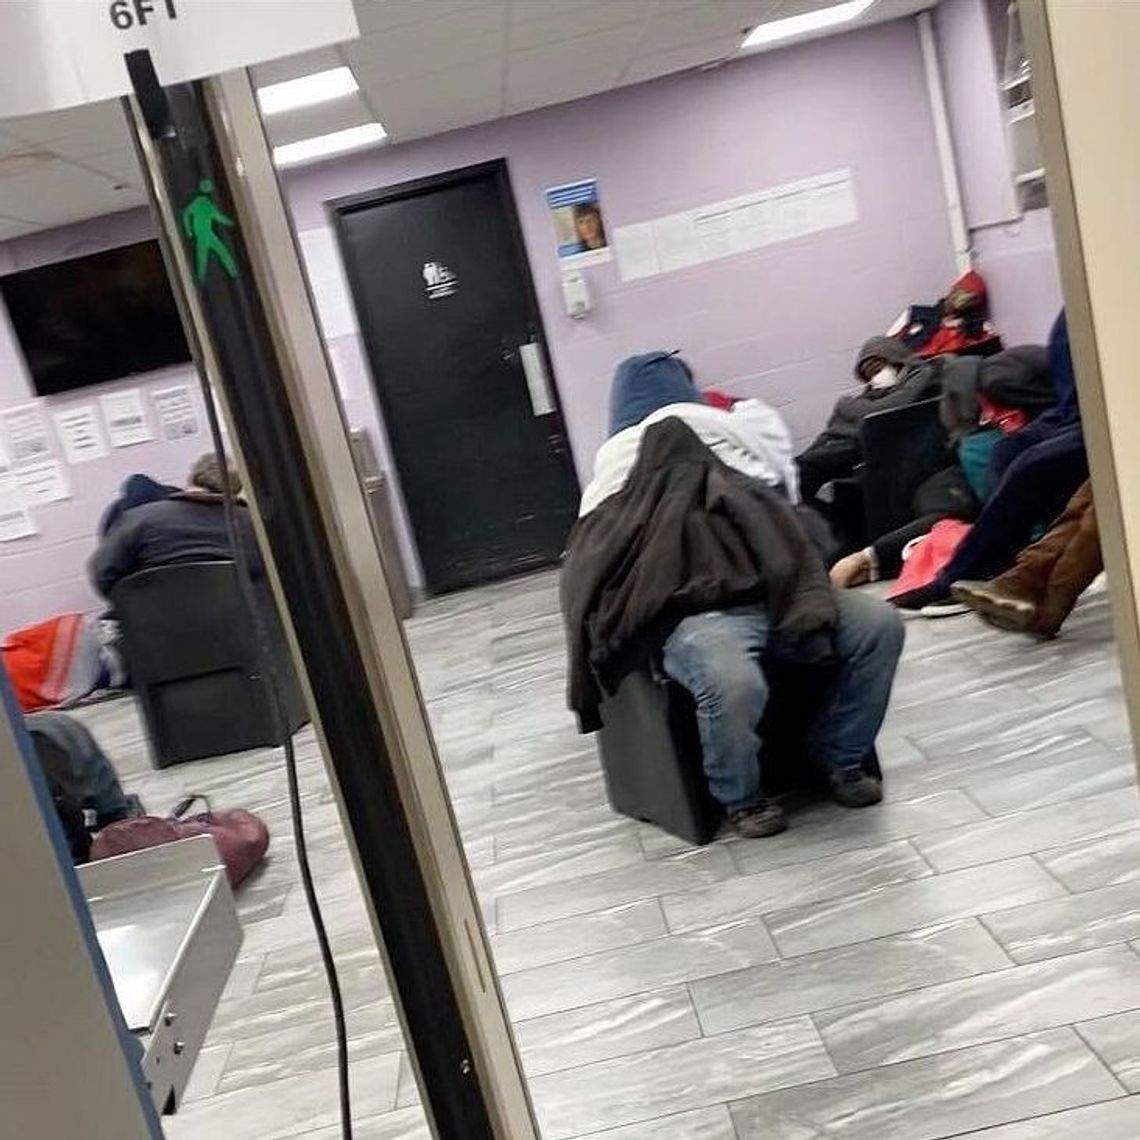 Homeless people were packed into a waiting area at the Schwartz Assessment Shelter on Wards Island during the coronavirus outbreak.